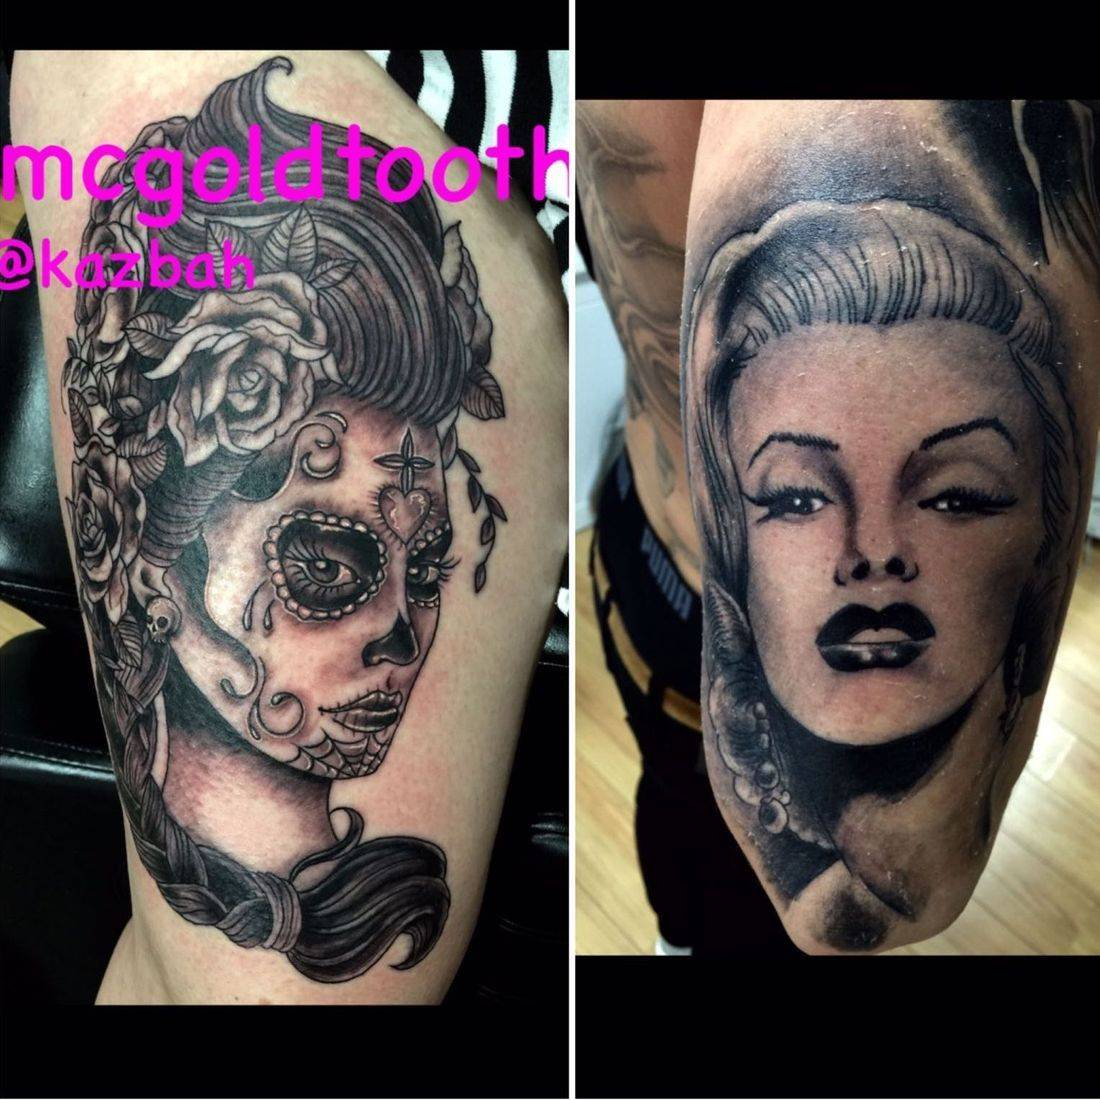 Tattoos by mcgoldtooth at kazbah Leicester City Centre